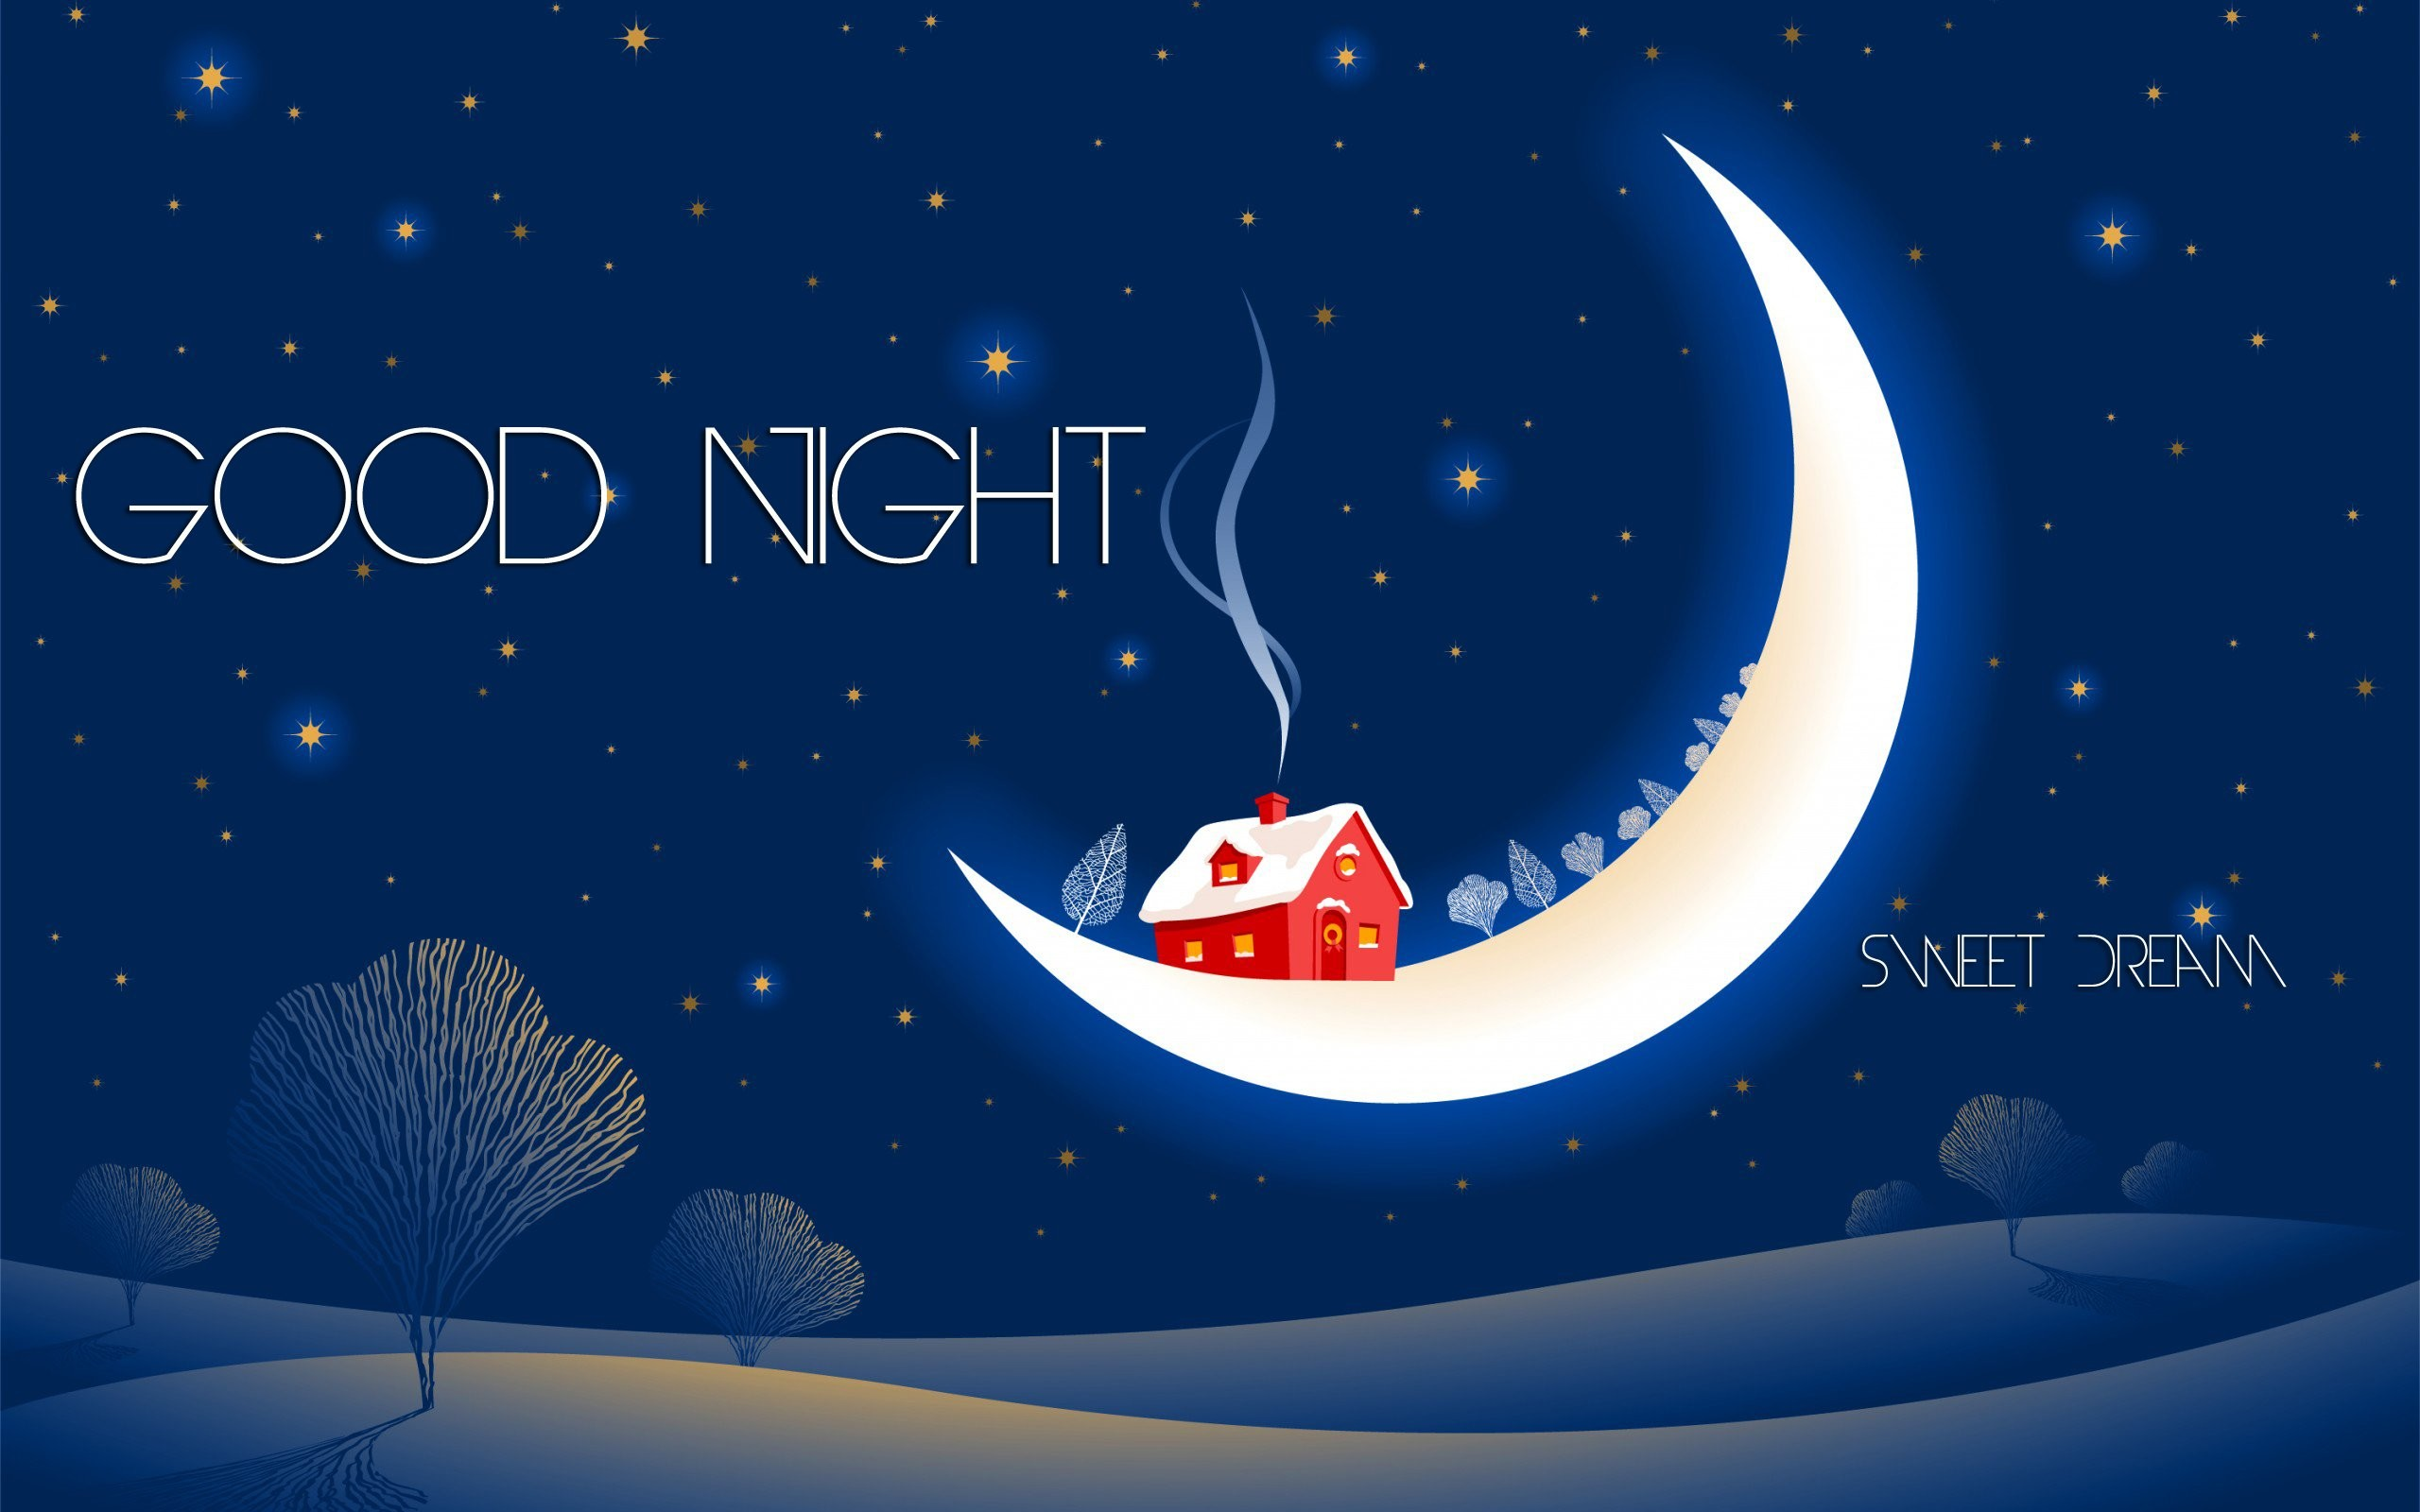 Good Night Wallpapers Wallpapertag